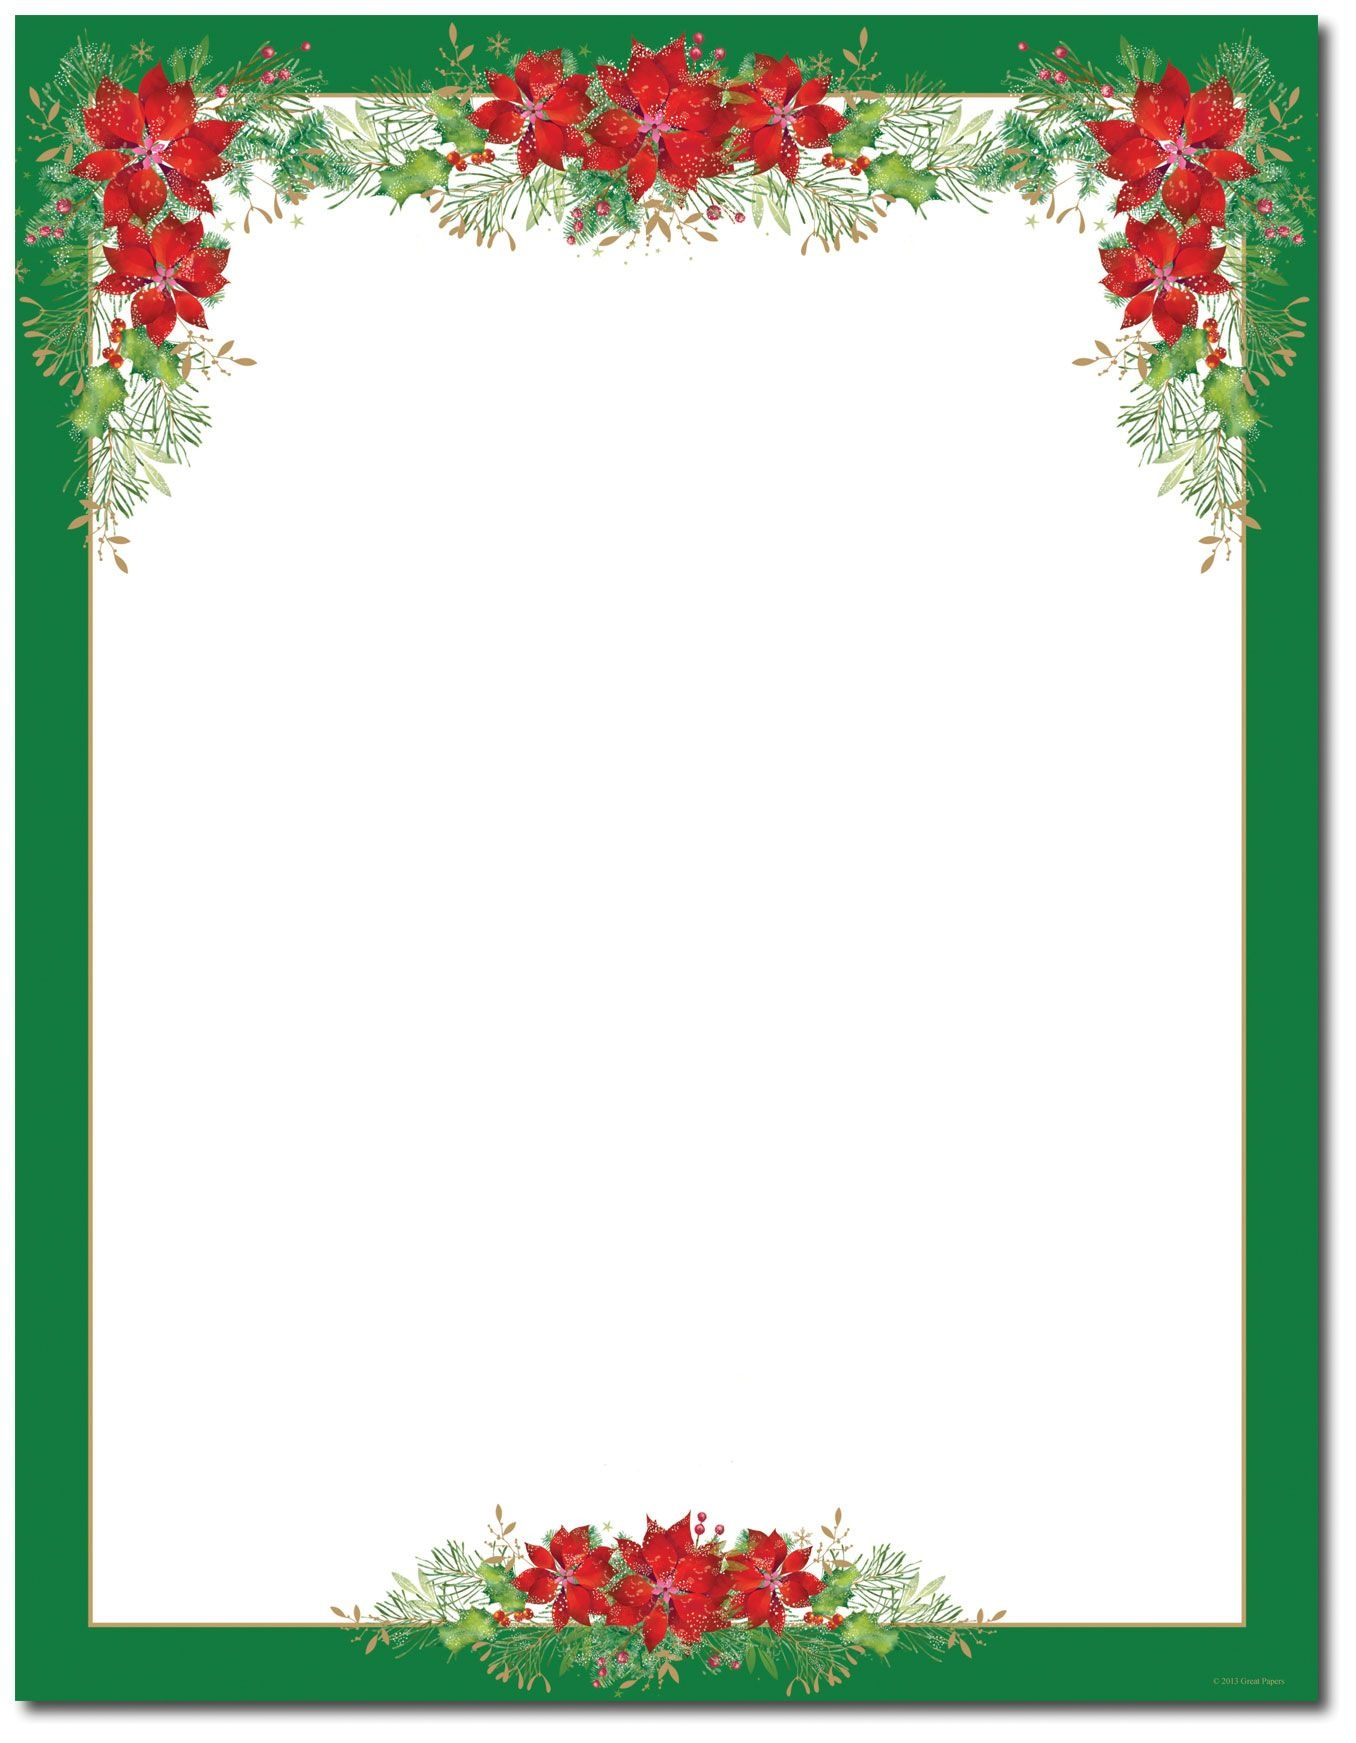 Poinsettia Valance Letterhead | Holiday Papers | Christmas Border - Free Printable Christmas Letterhead